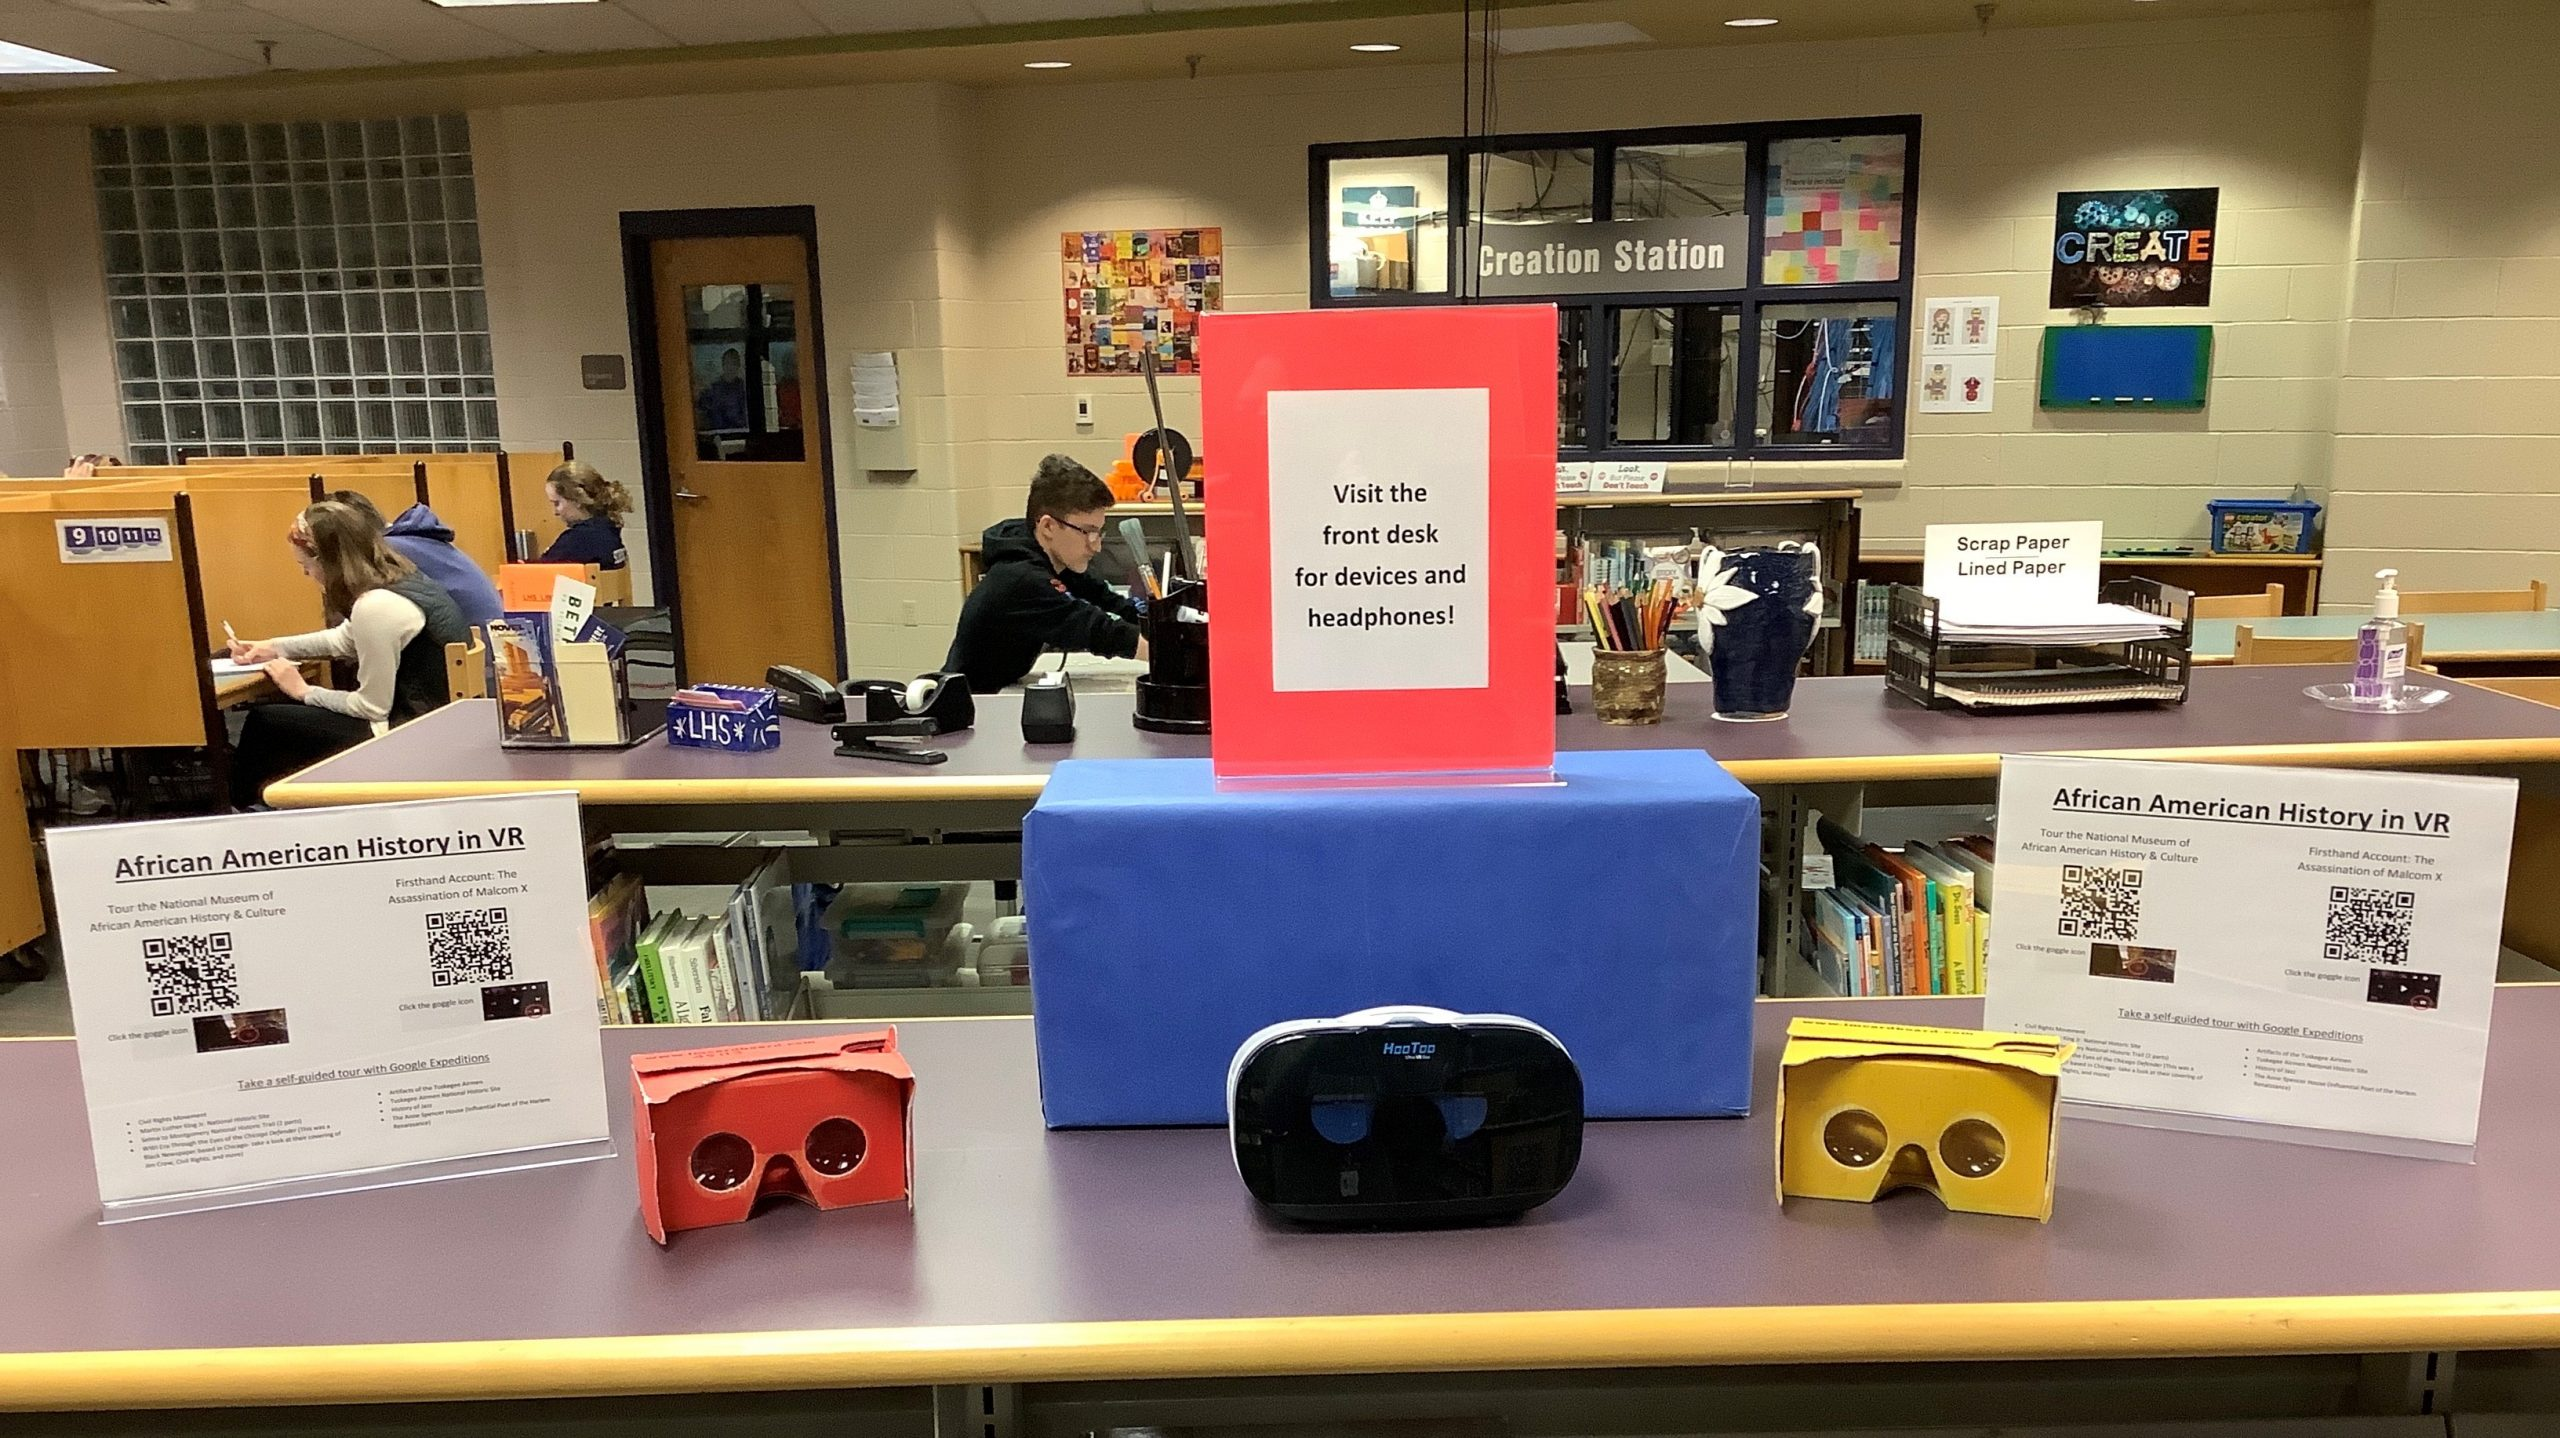 Display of Black History Month Virtual Reality Resources.